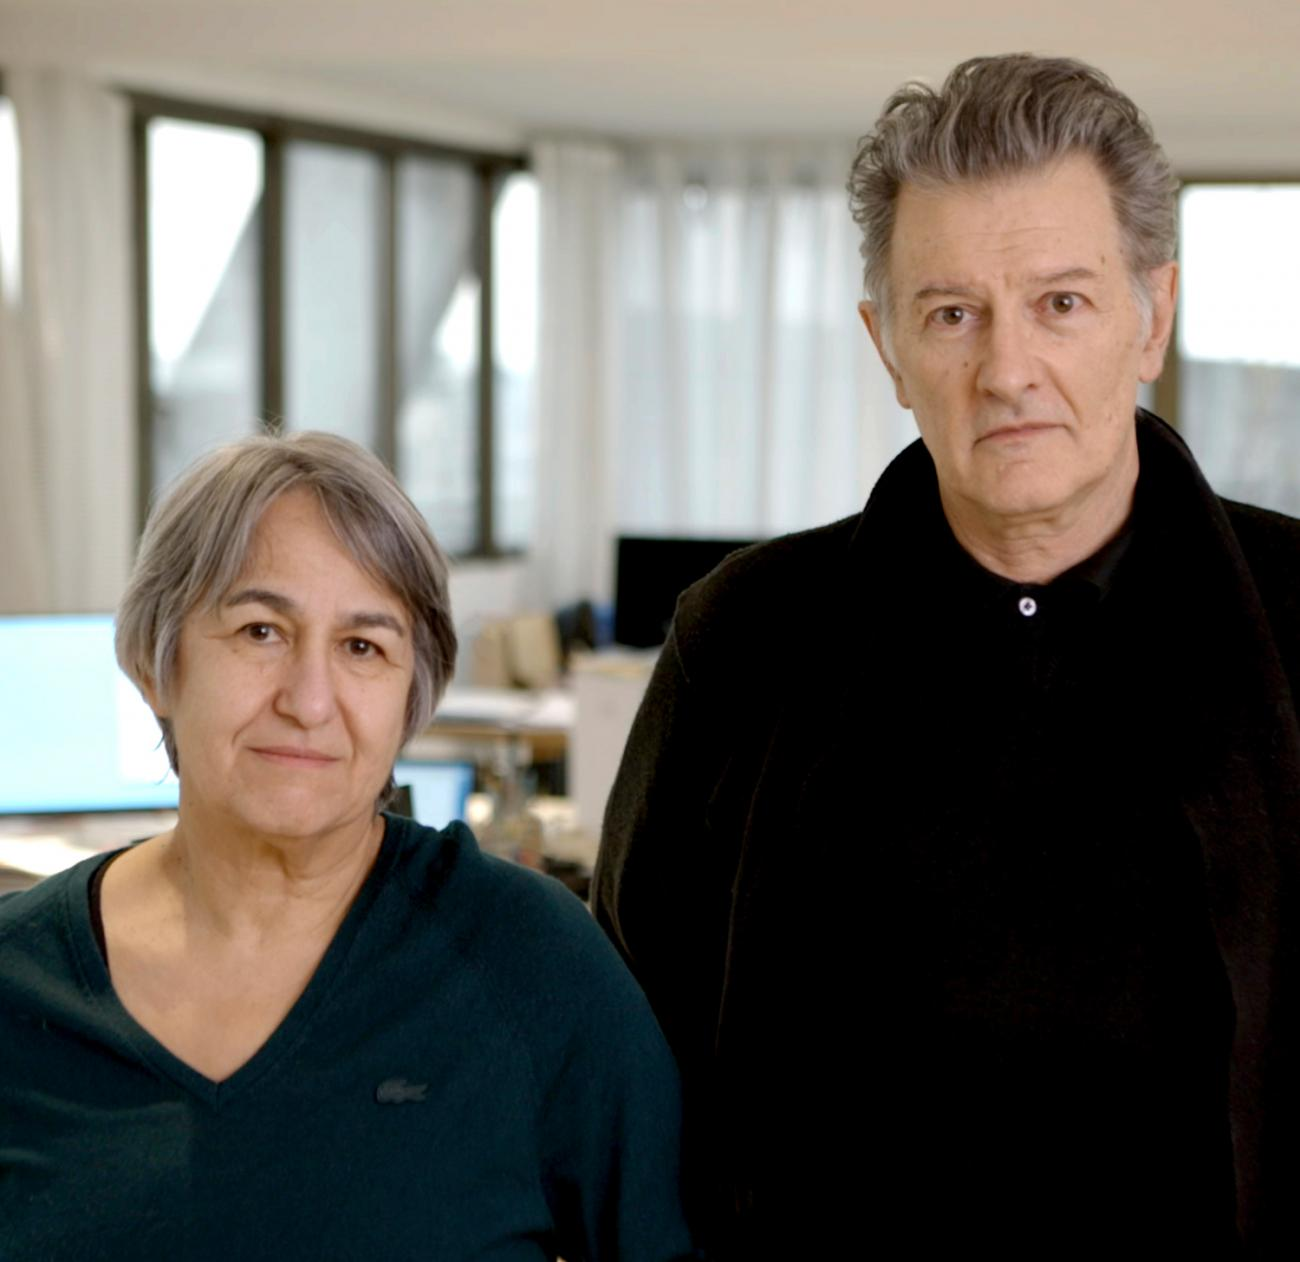 Anne Lacaton and Jean-Philippe Vassal, photo courtesy of Laurent Chalet